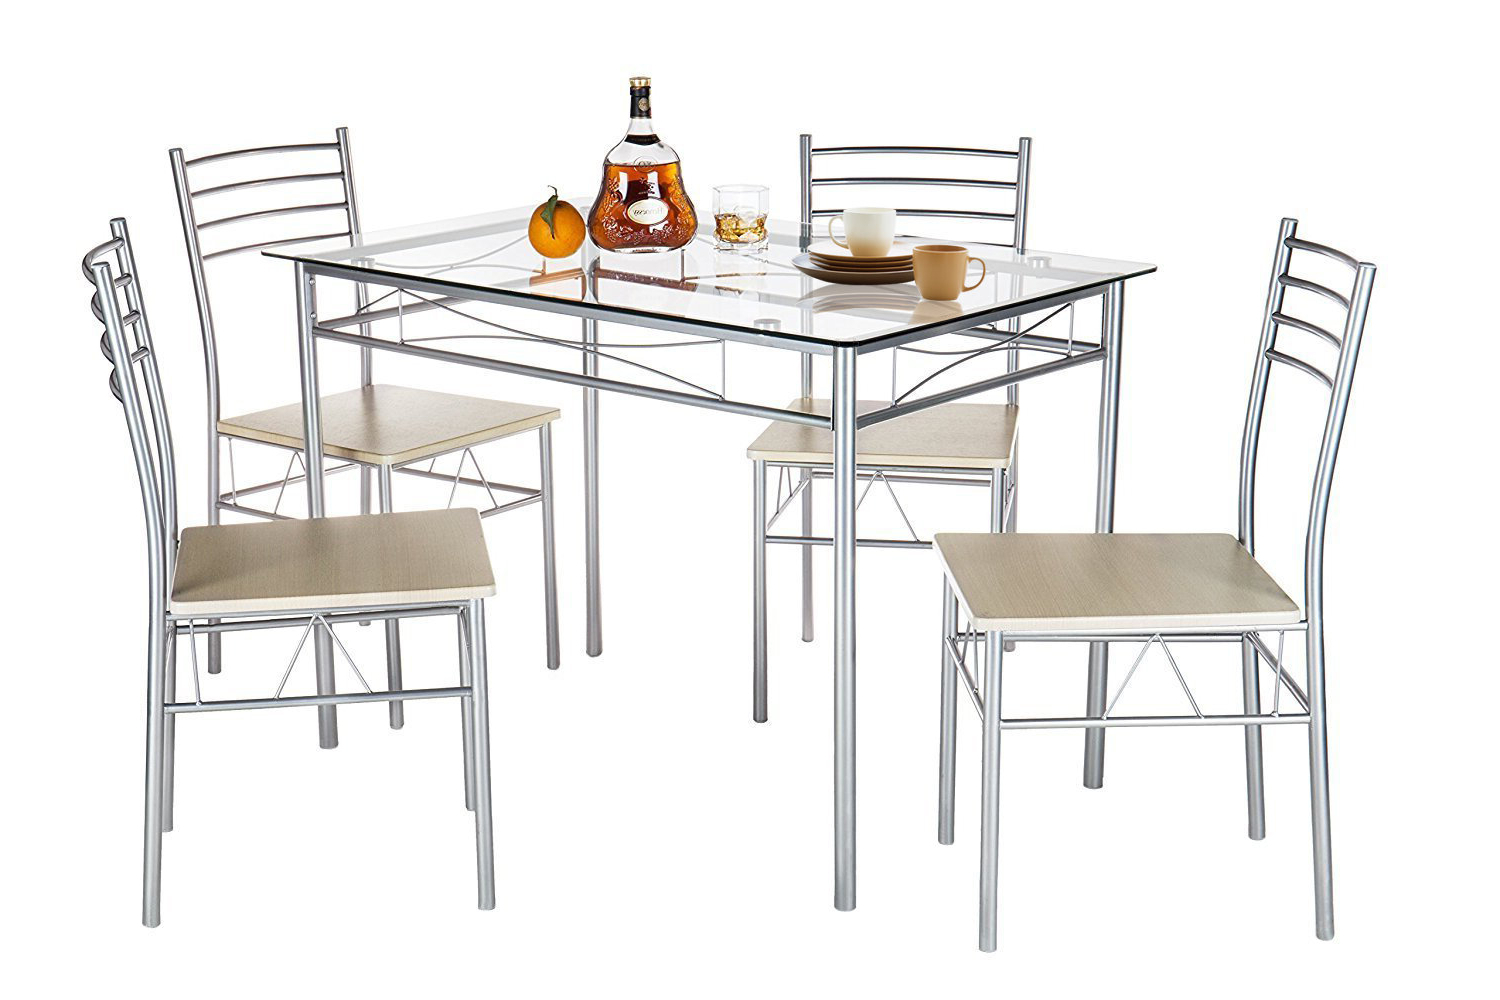 Ebern Designs Liles 5 Piece Breakfast Nook Dining Set & Reviews Intended For Most Current 5 Piece Breakfast Nook Dining Sets (View 25 of 25)